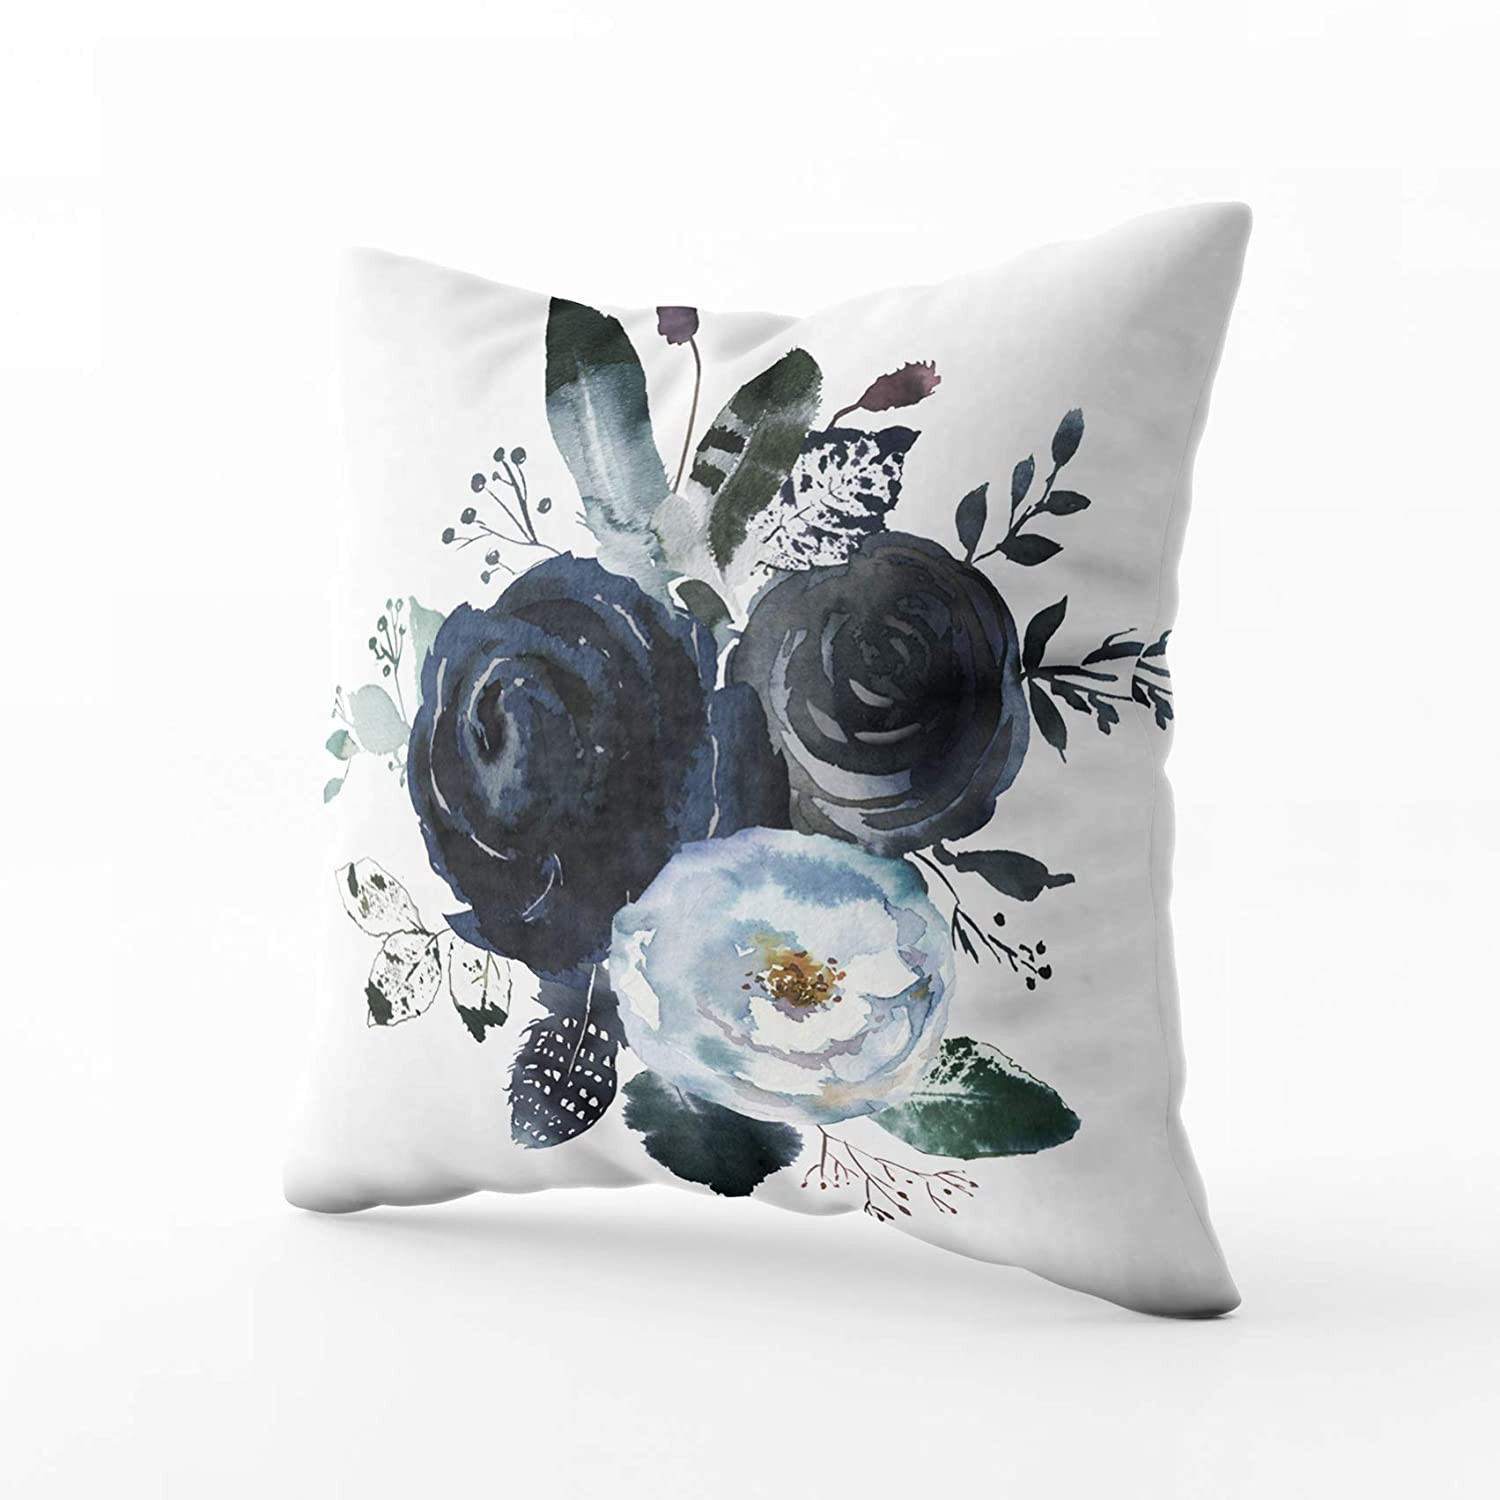 HerysTa Easter Home Decorative Cotton Throw Pillow Cover 16X16inch Invisible Zipper Cushion Cases Watercolor Floral Wreath Roses Peonies Leaves Boho Grey Navy White Indigo Blue Square Sofa Bed Décor